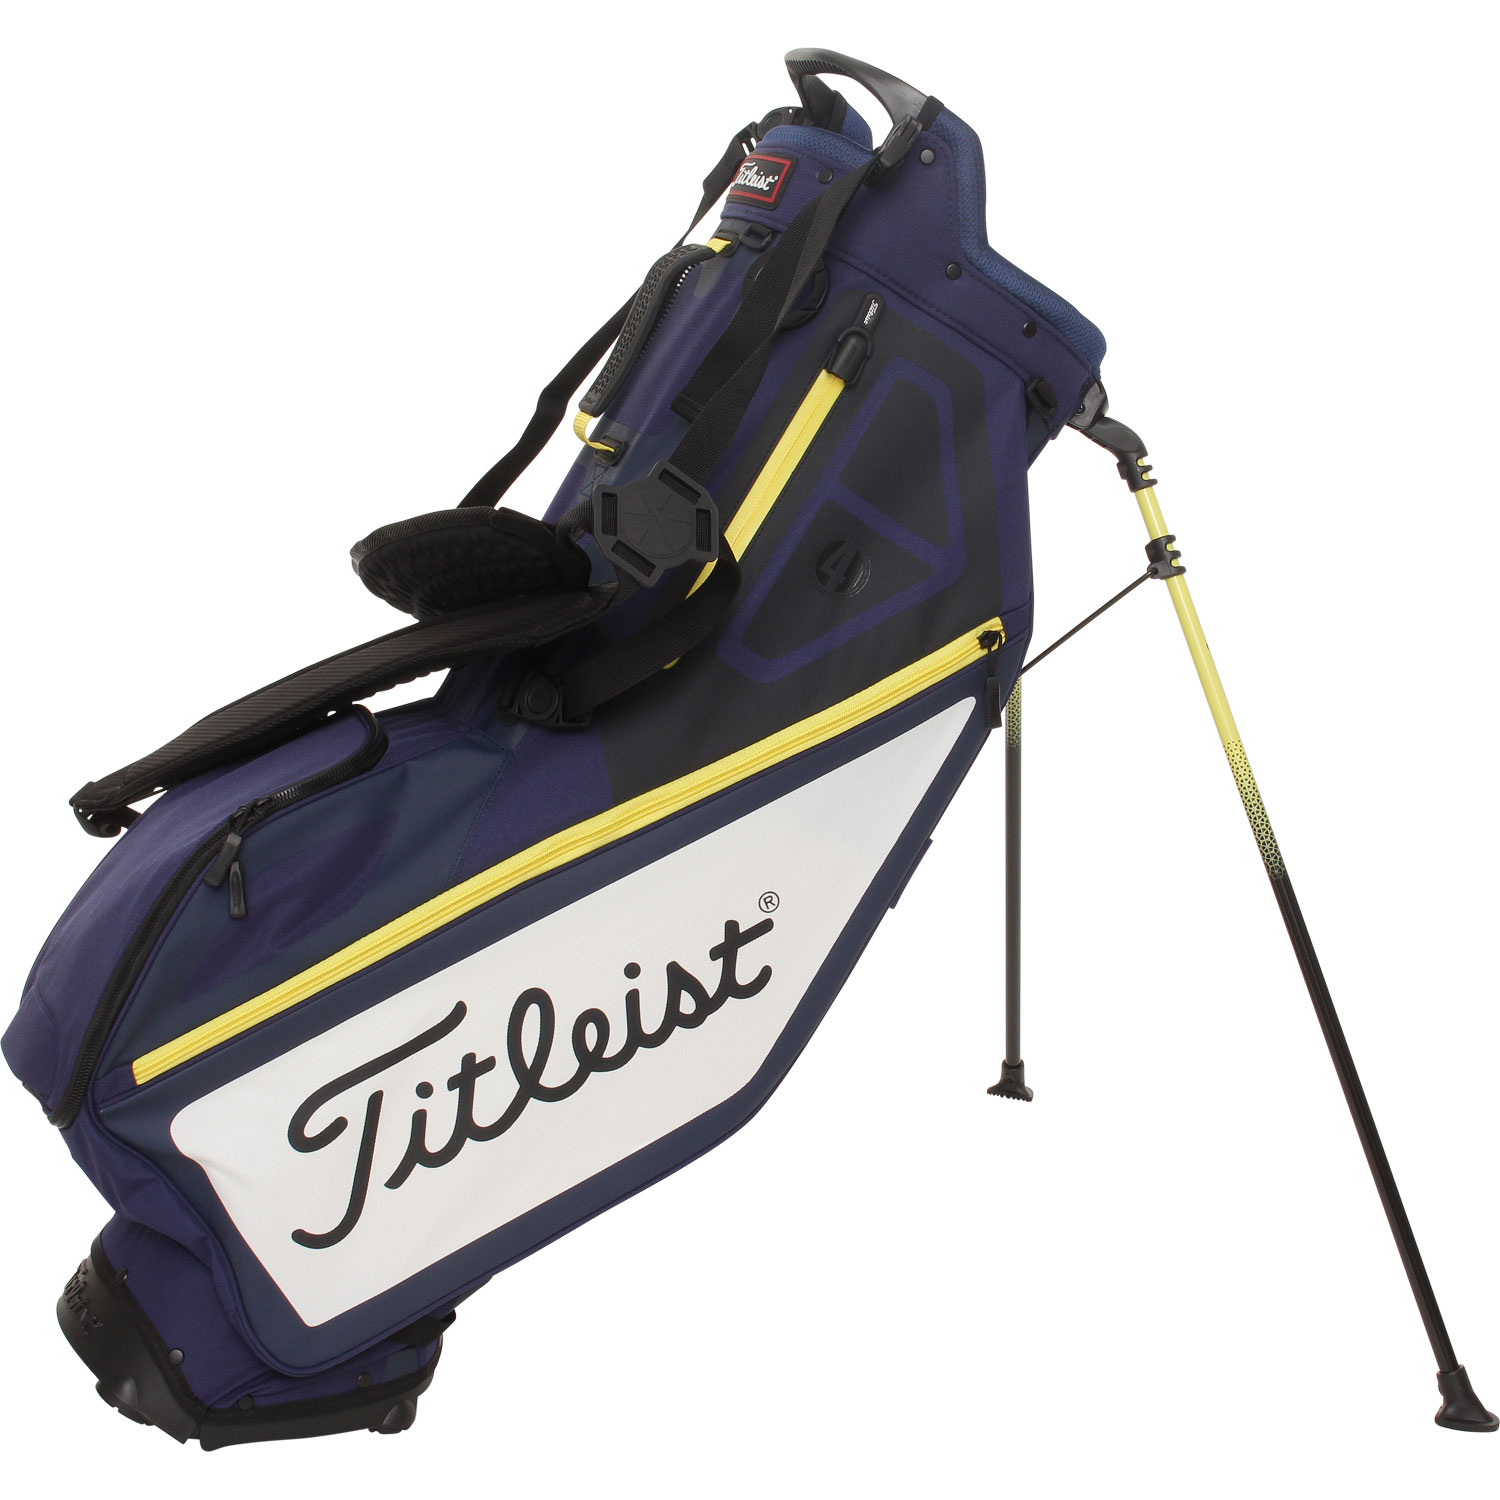 titleist taschen g nstig auf rechnung kaufen all4golf. Black Bedroom Furniture Sets. Home Design Ideas